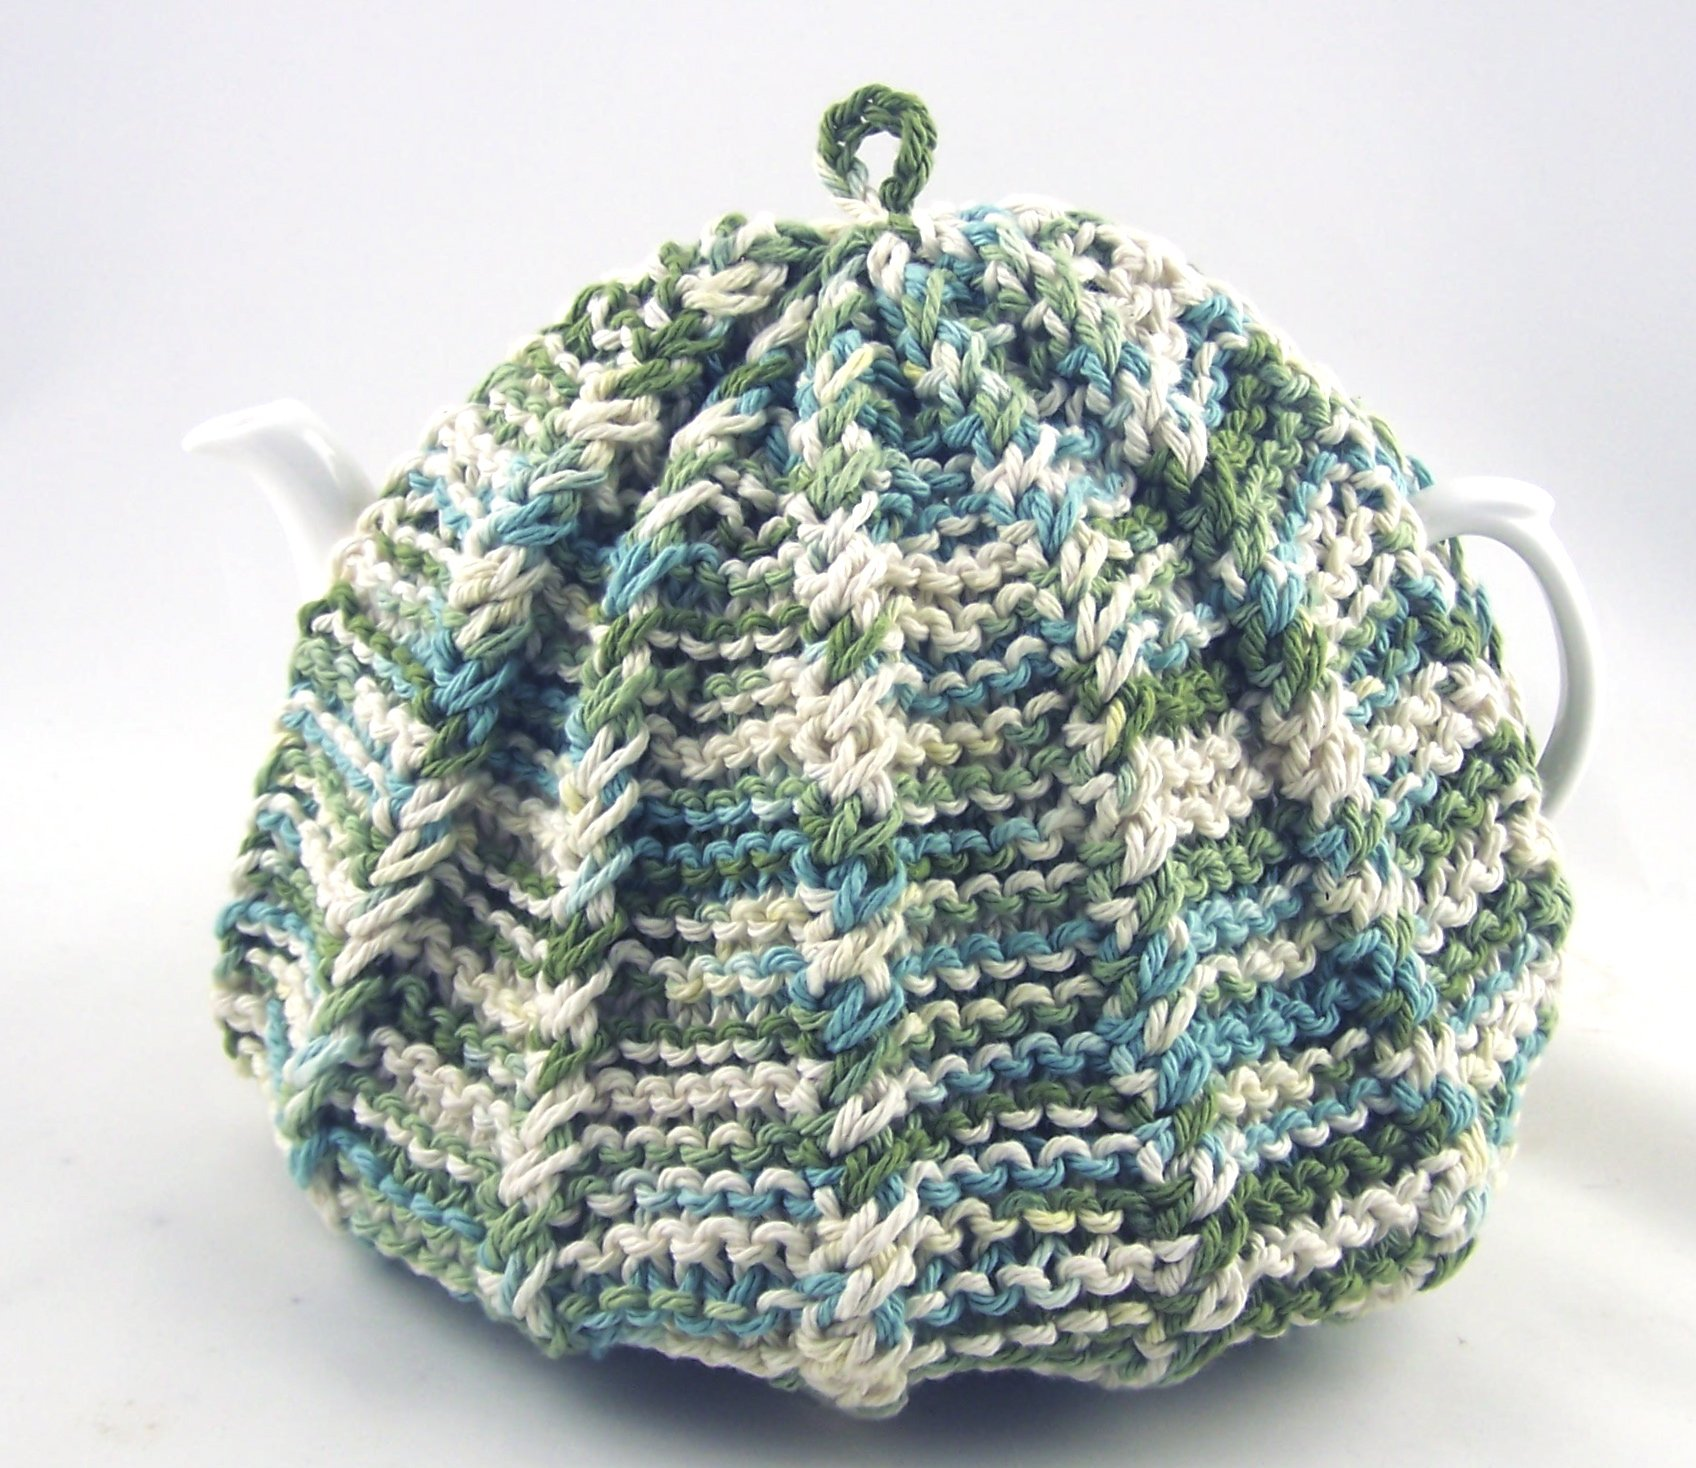 Knit Tea Cozy Cosy Handmade Washable Turquoise Blue and Green